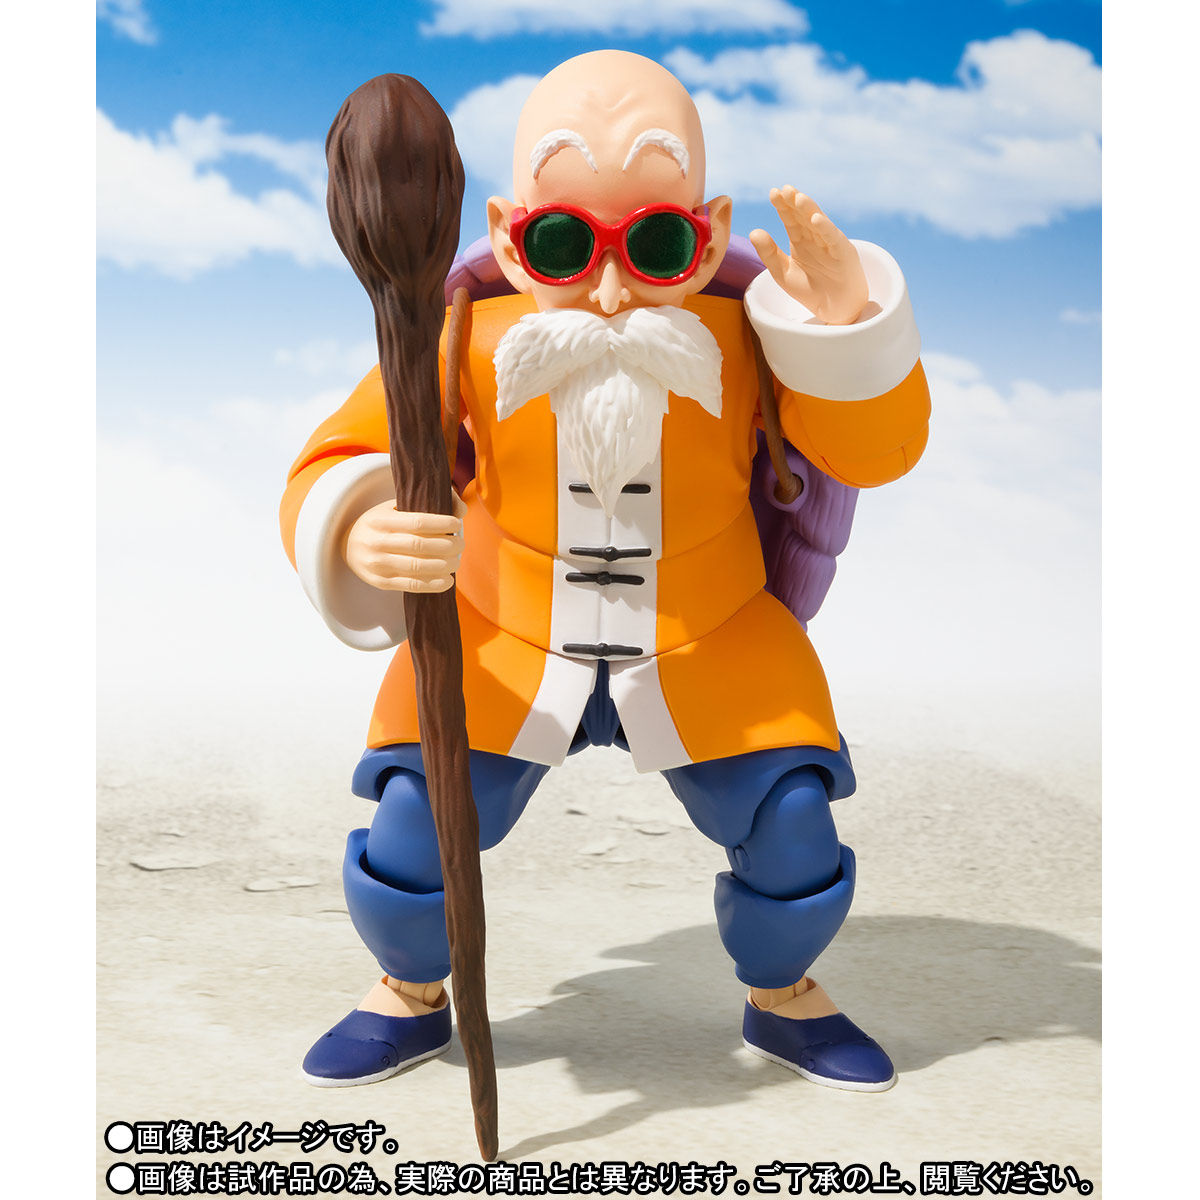 S.H. Figuarts Dragon Ball Z Master Roshi Figure Now $54 On Amazon